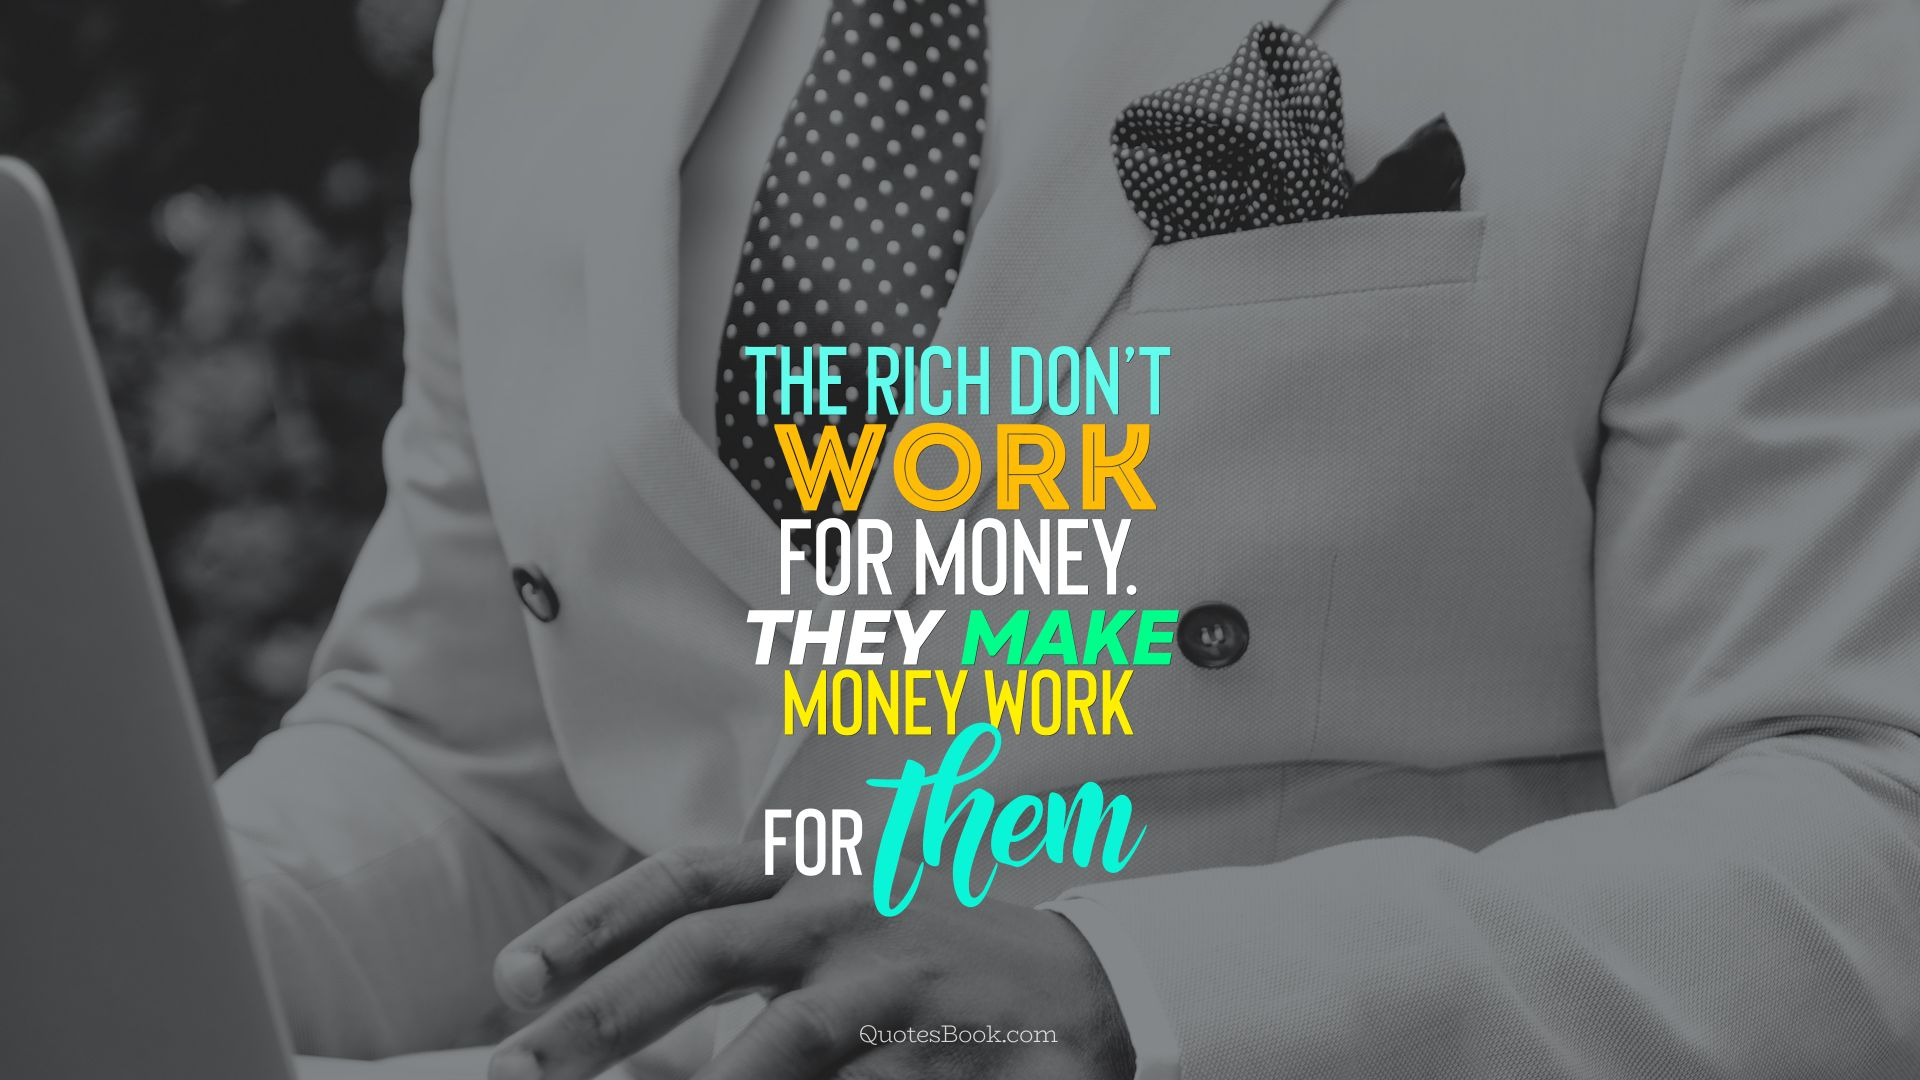 The rich don't work for money. They make money work for them